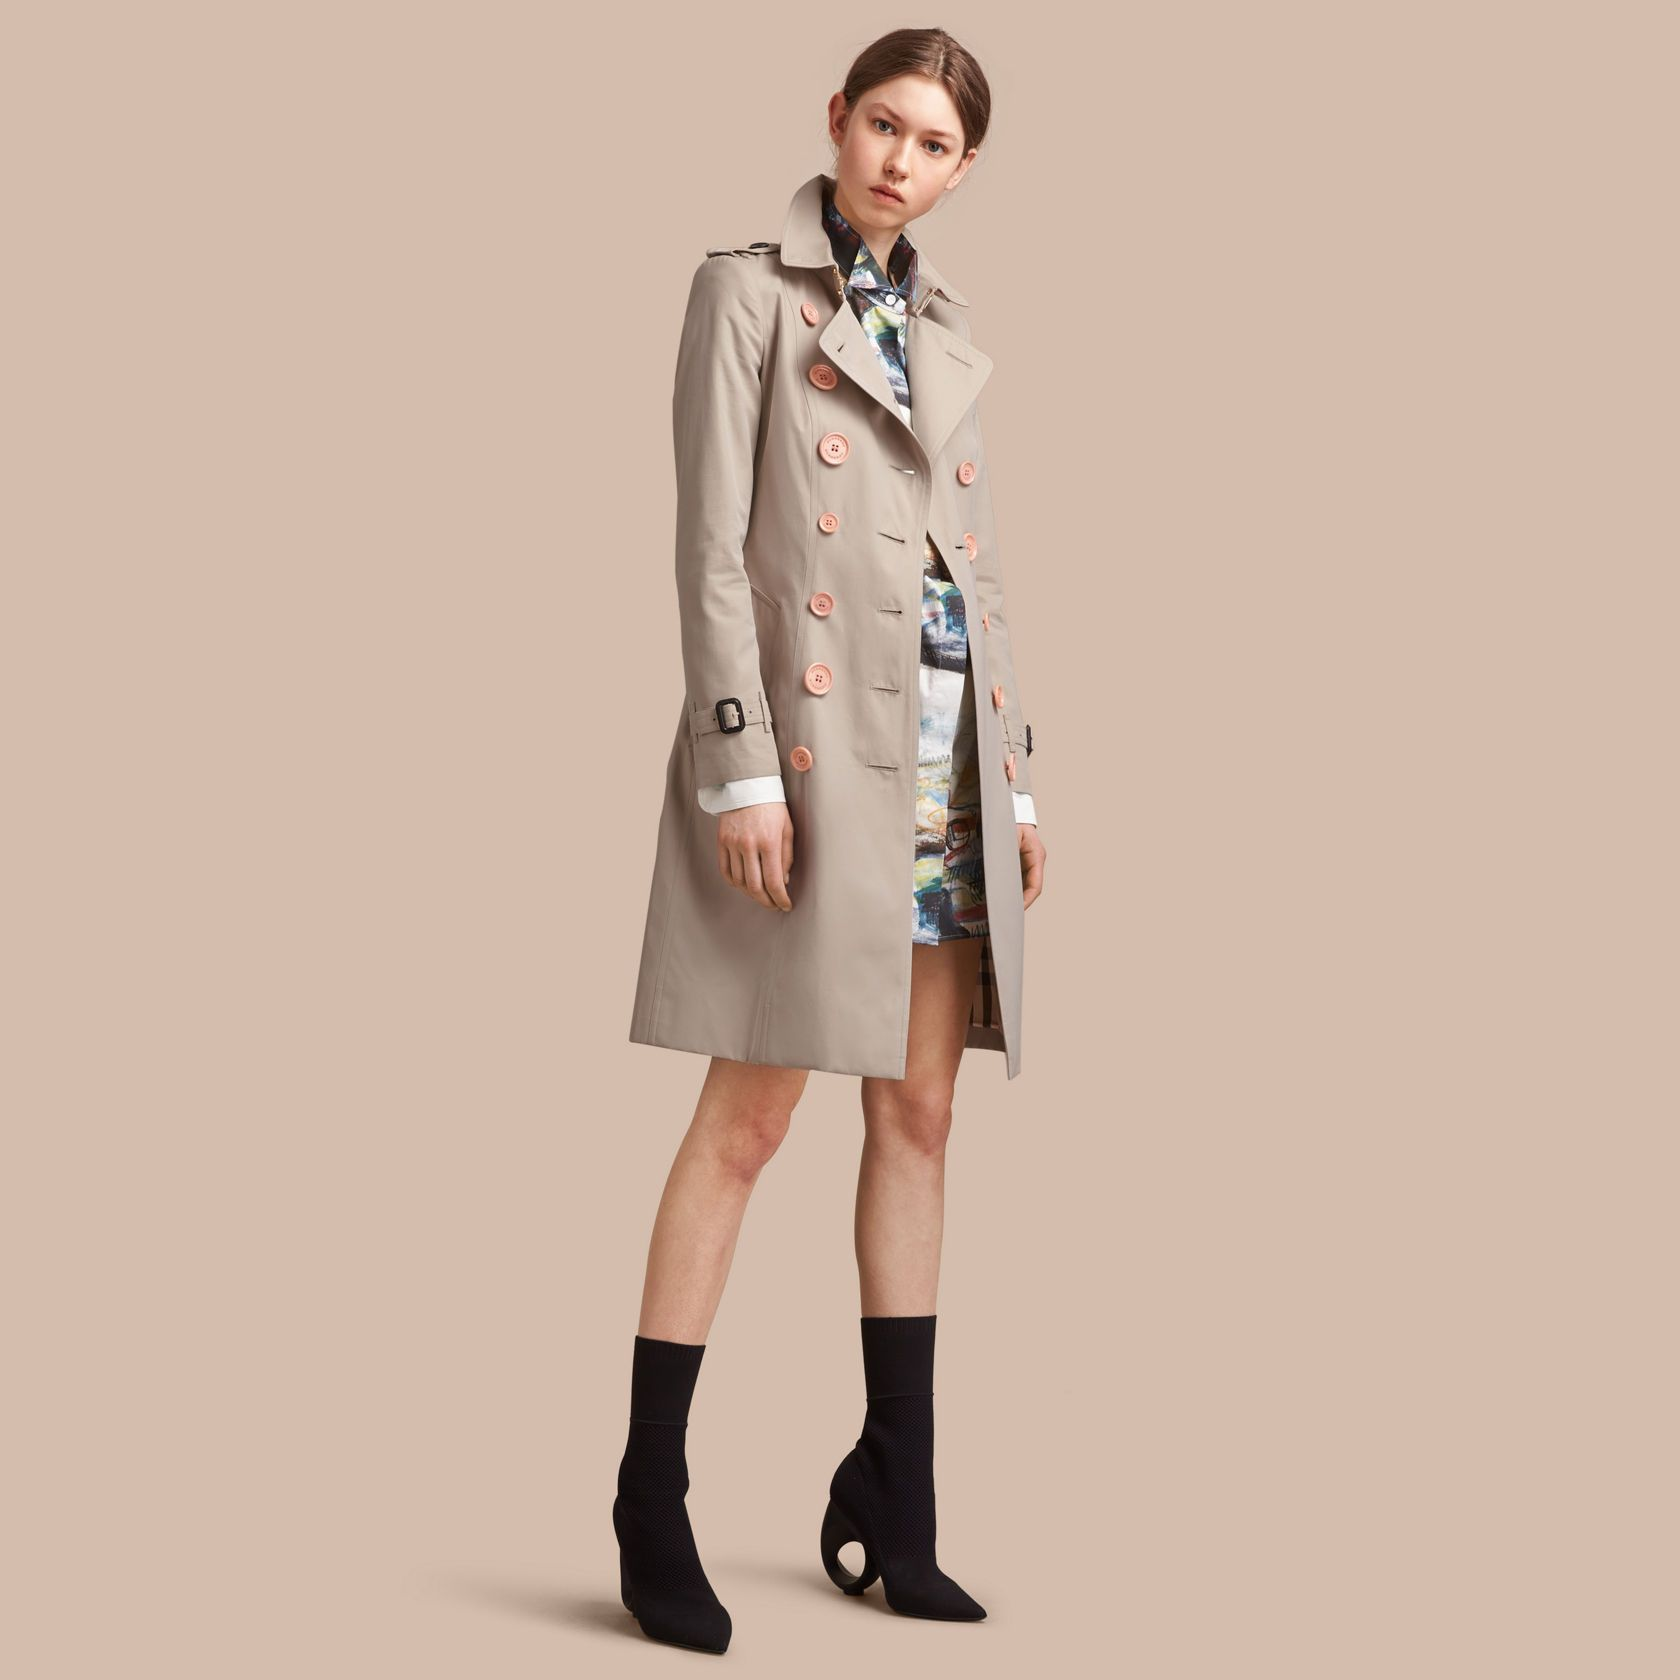 Lifestyle Trench Burberry Pour Pinterest amp; Coats Mode Femme 4Uv1A4Y